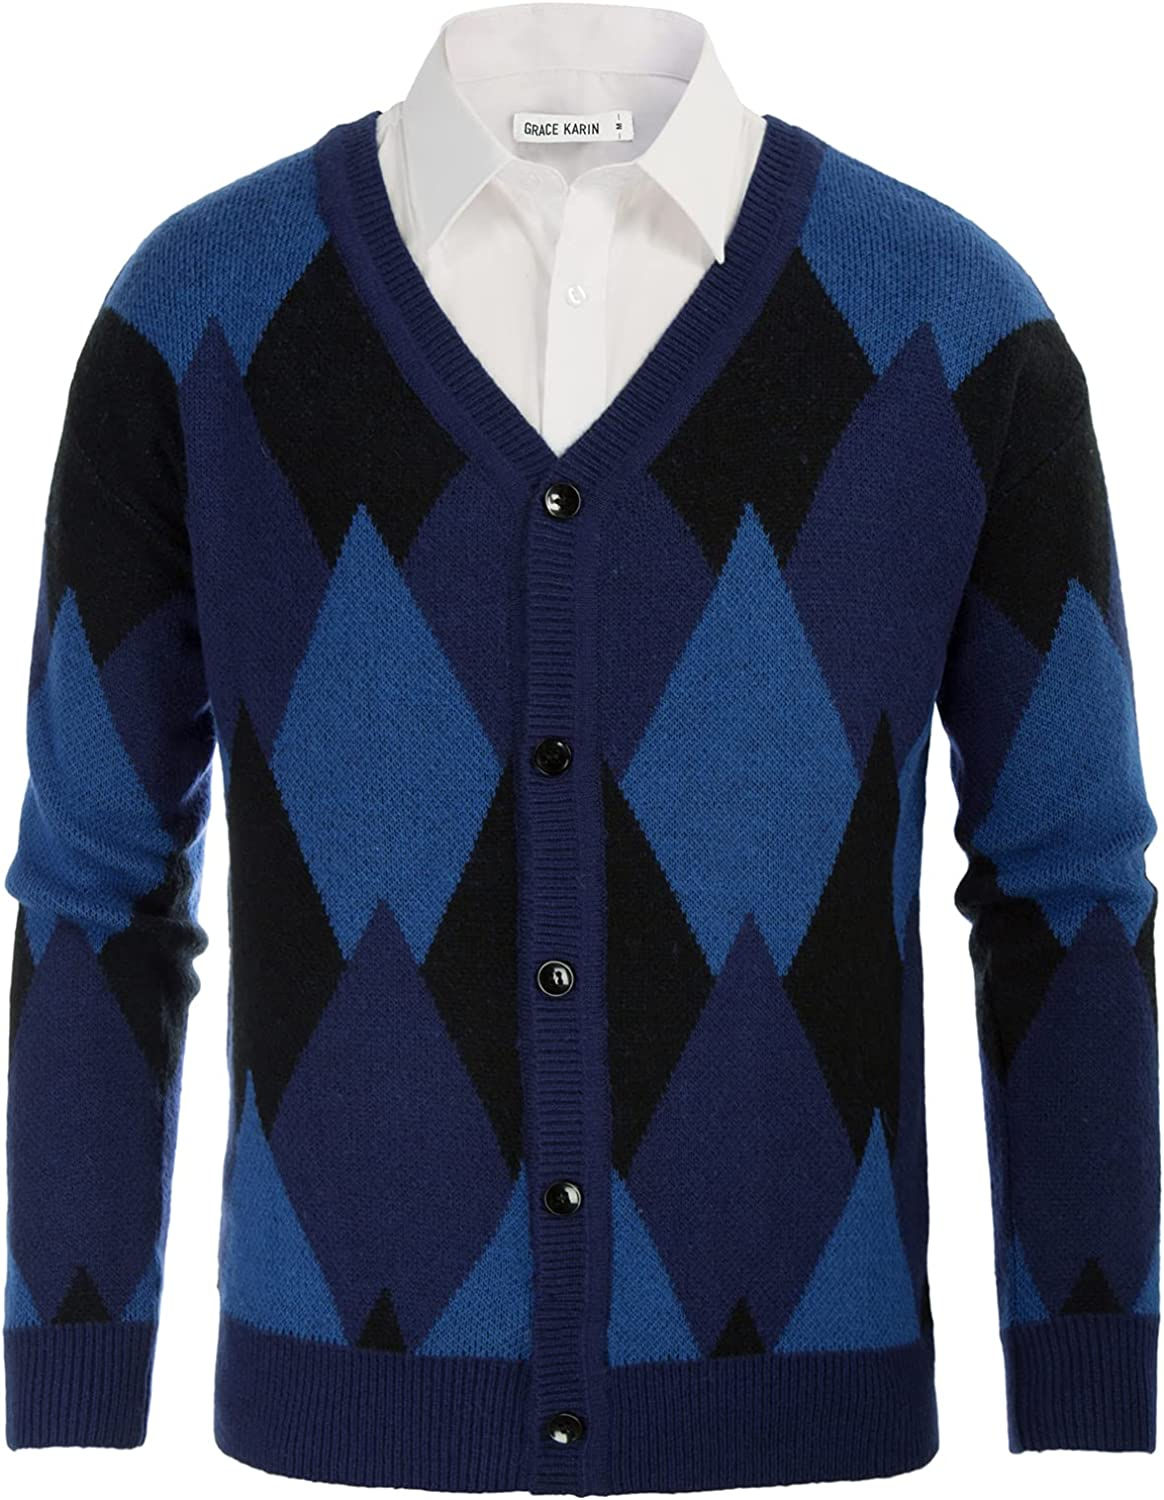 GRACE Dallas Mall Ranking TOP19 KARIN Men's V Neck Argyle Cardigan Swe Knitted Button Down